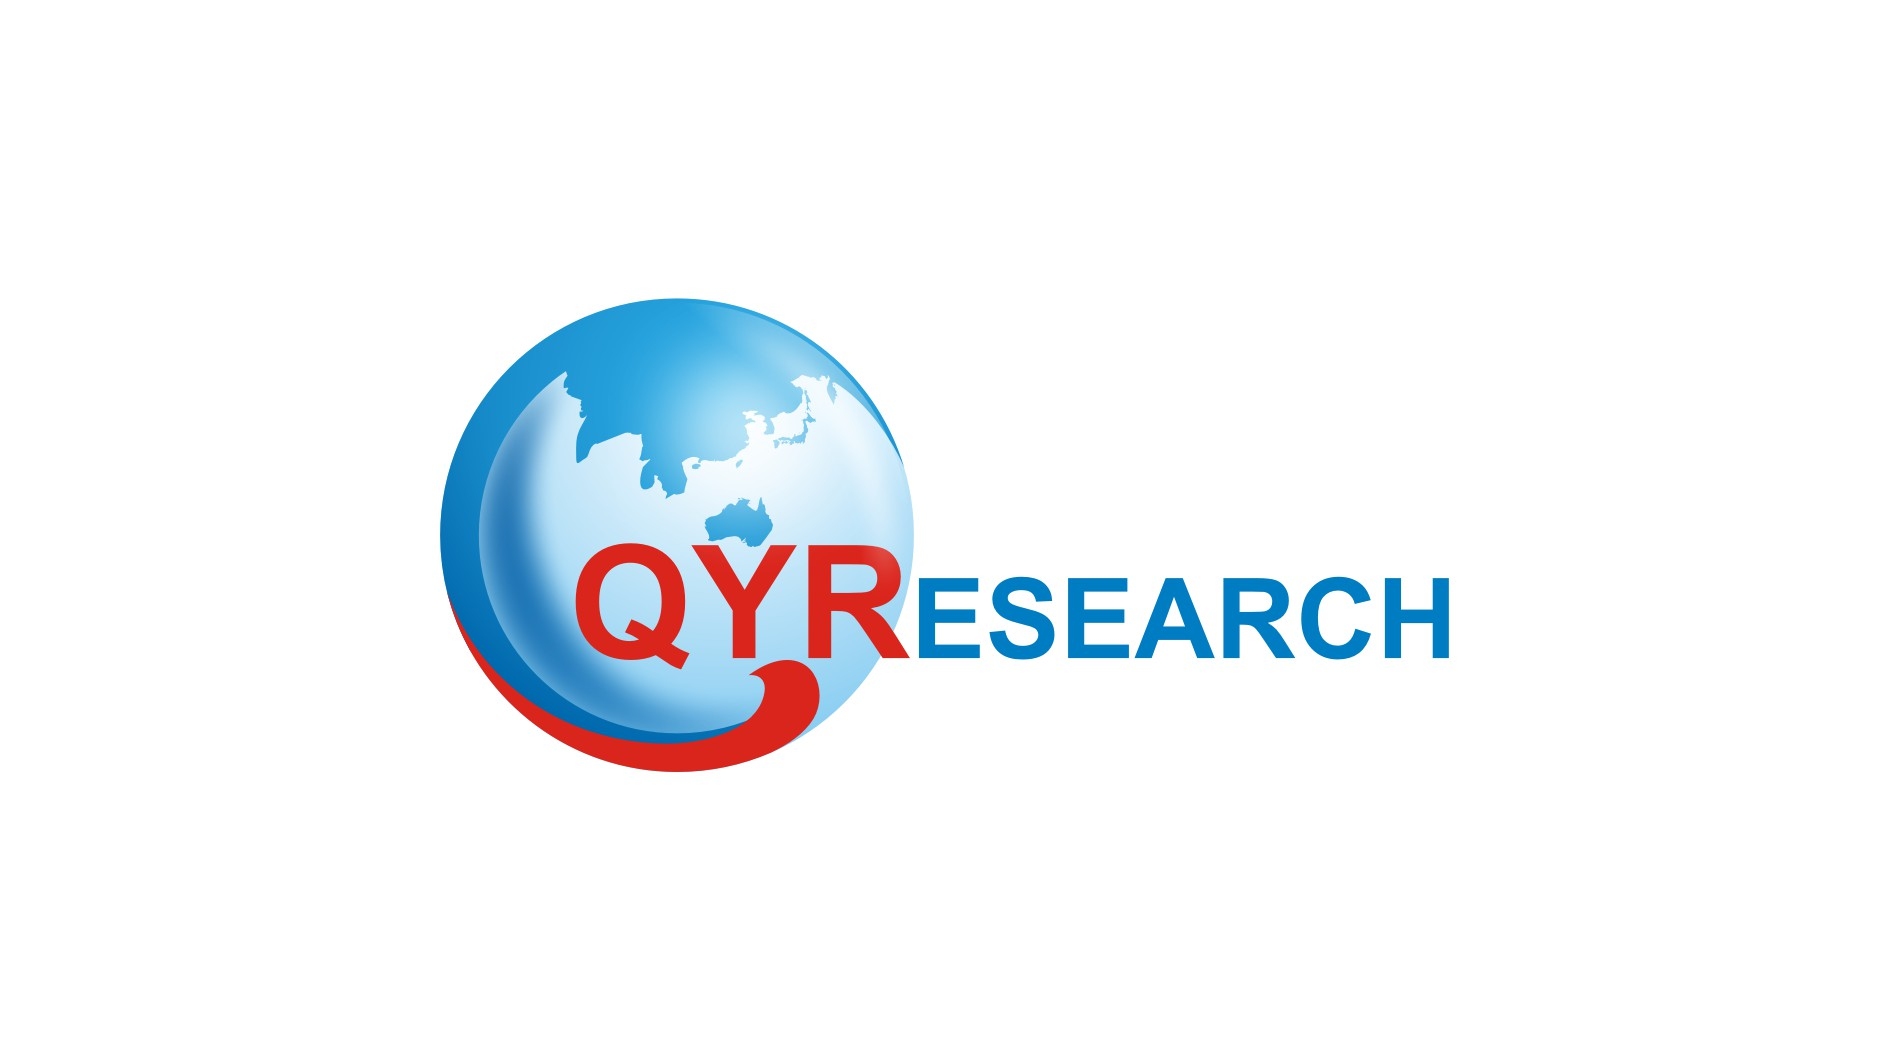 Aktuelle Forschung: Global Robotic Welding Market Prognose 2019 2025